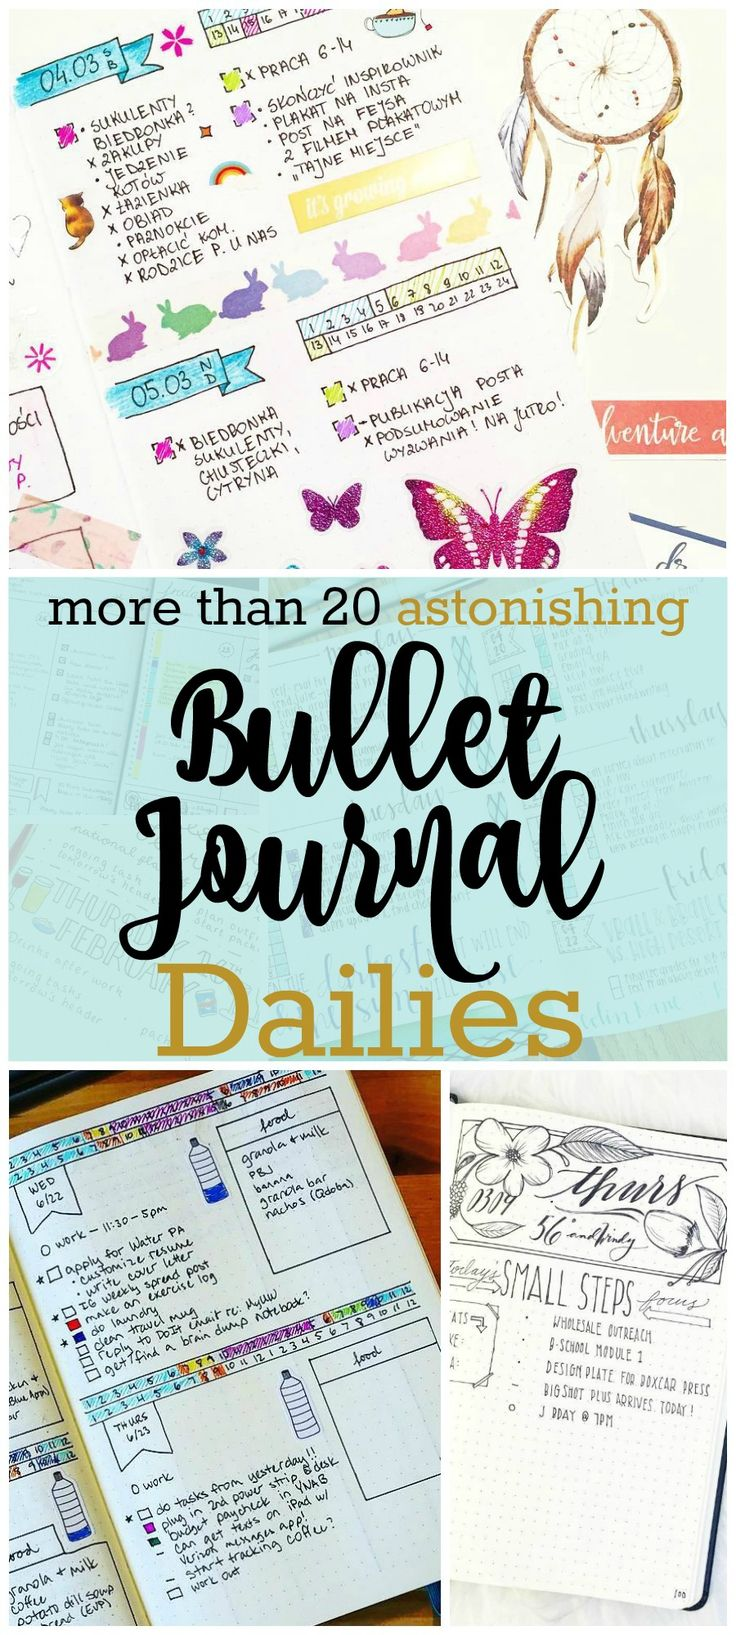 Bullet Journal Dailies are the cornerstone of the bullet journal system. Not sure how to get started? Check out more than 20 of my favorite bujo dailies.